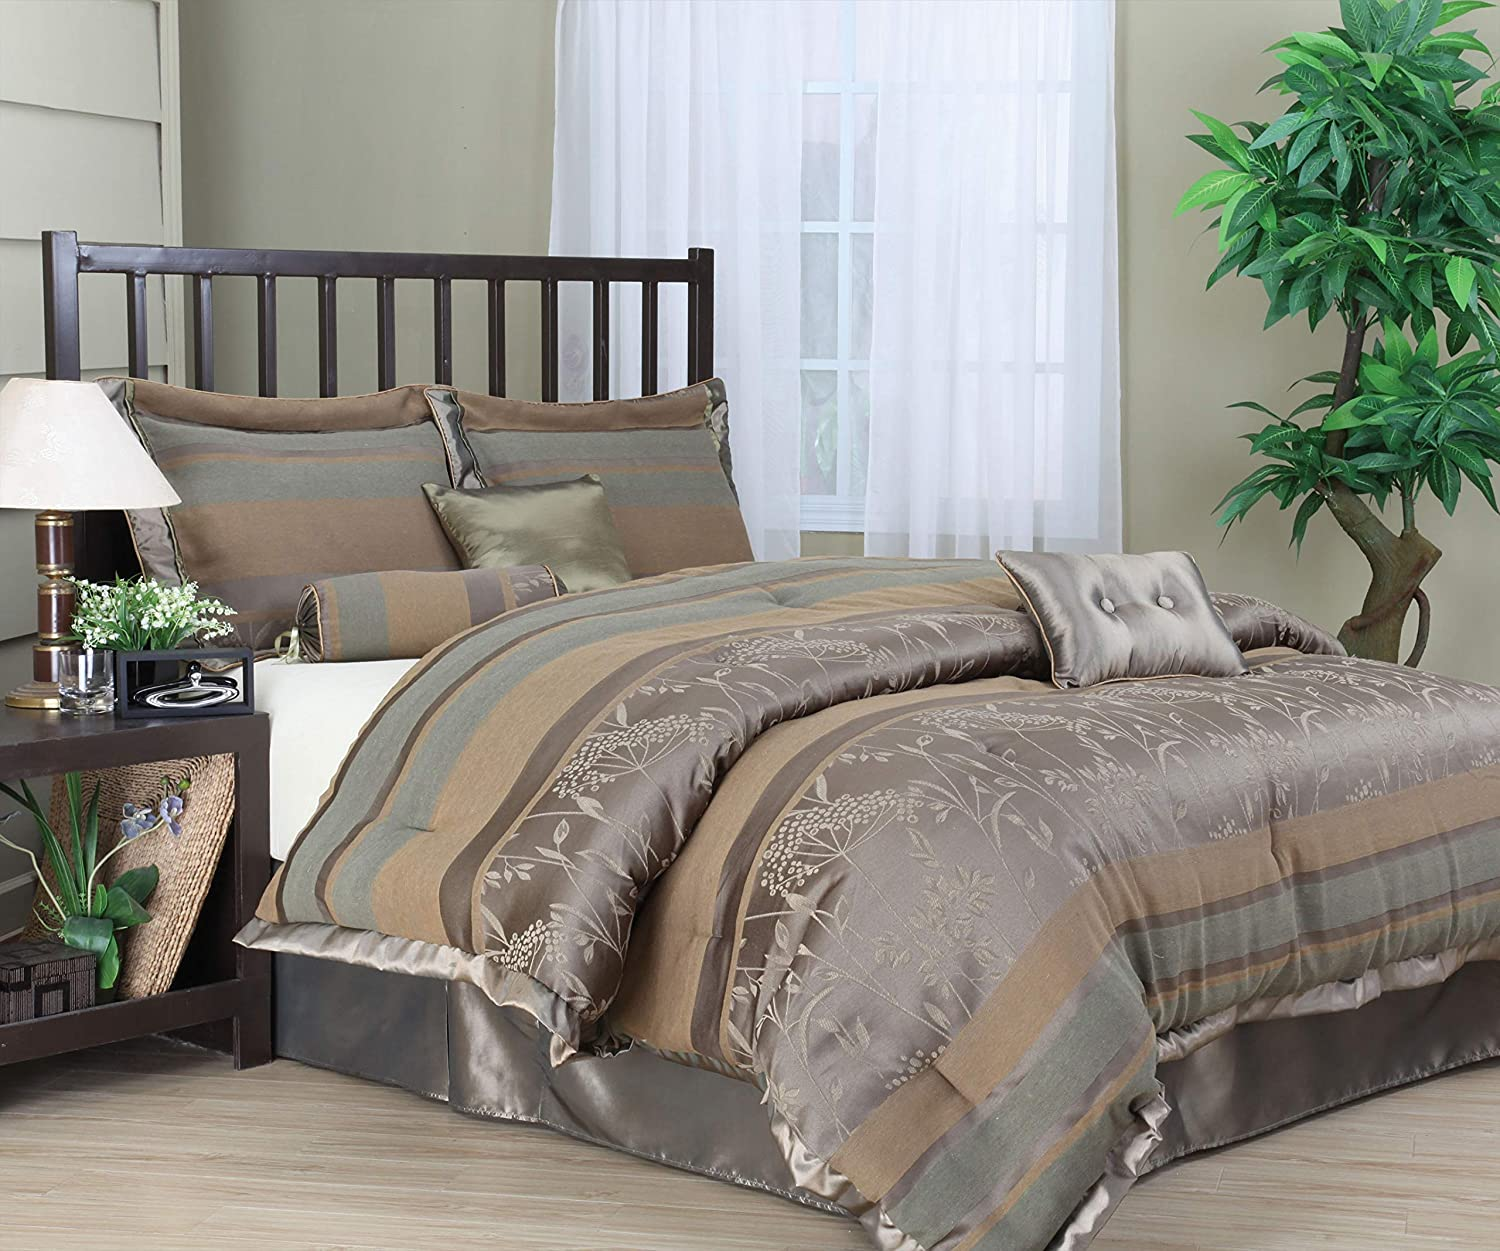 Stratford Park Victoria Comforter 70% Ranking TOP13 OFF Outlet Taupe Set Full